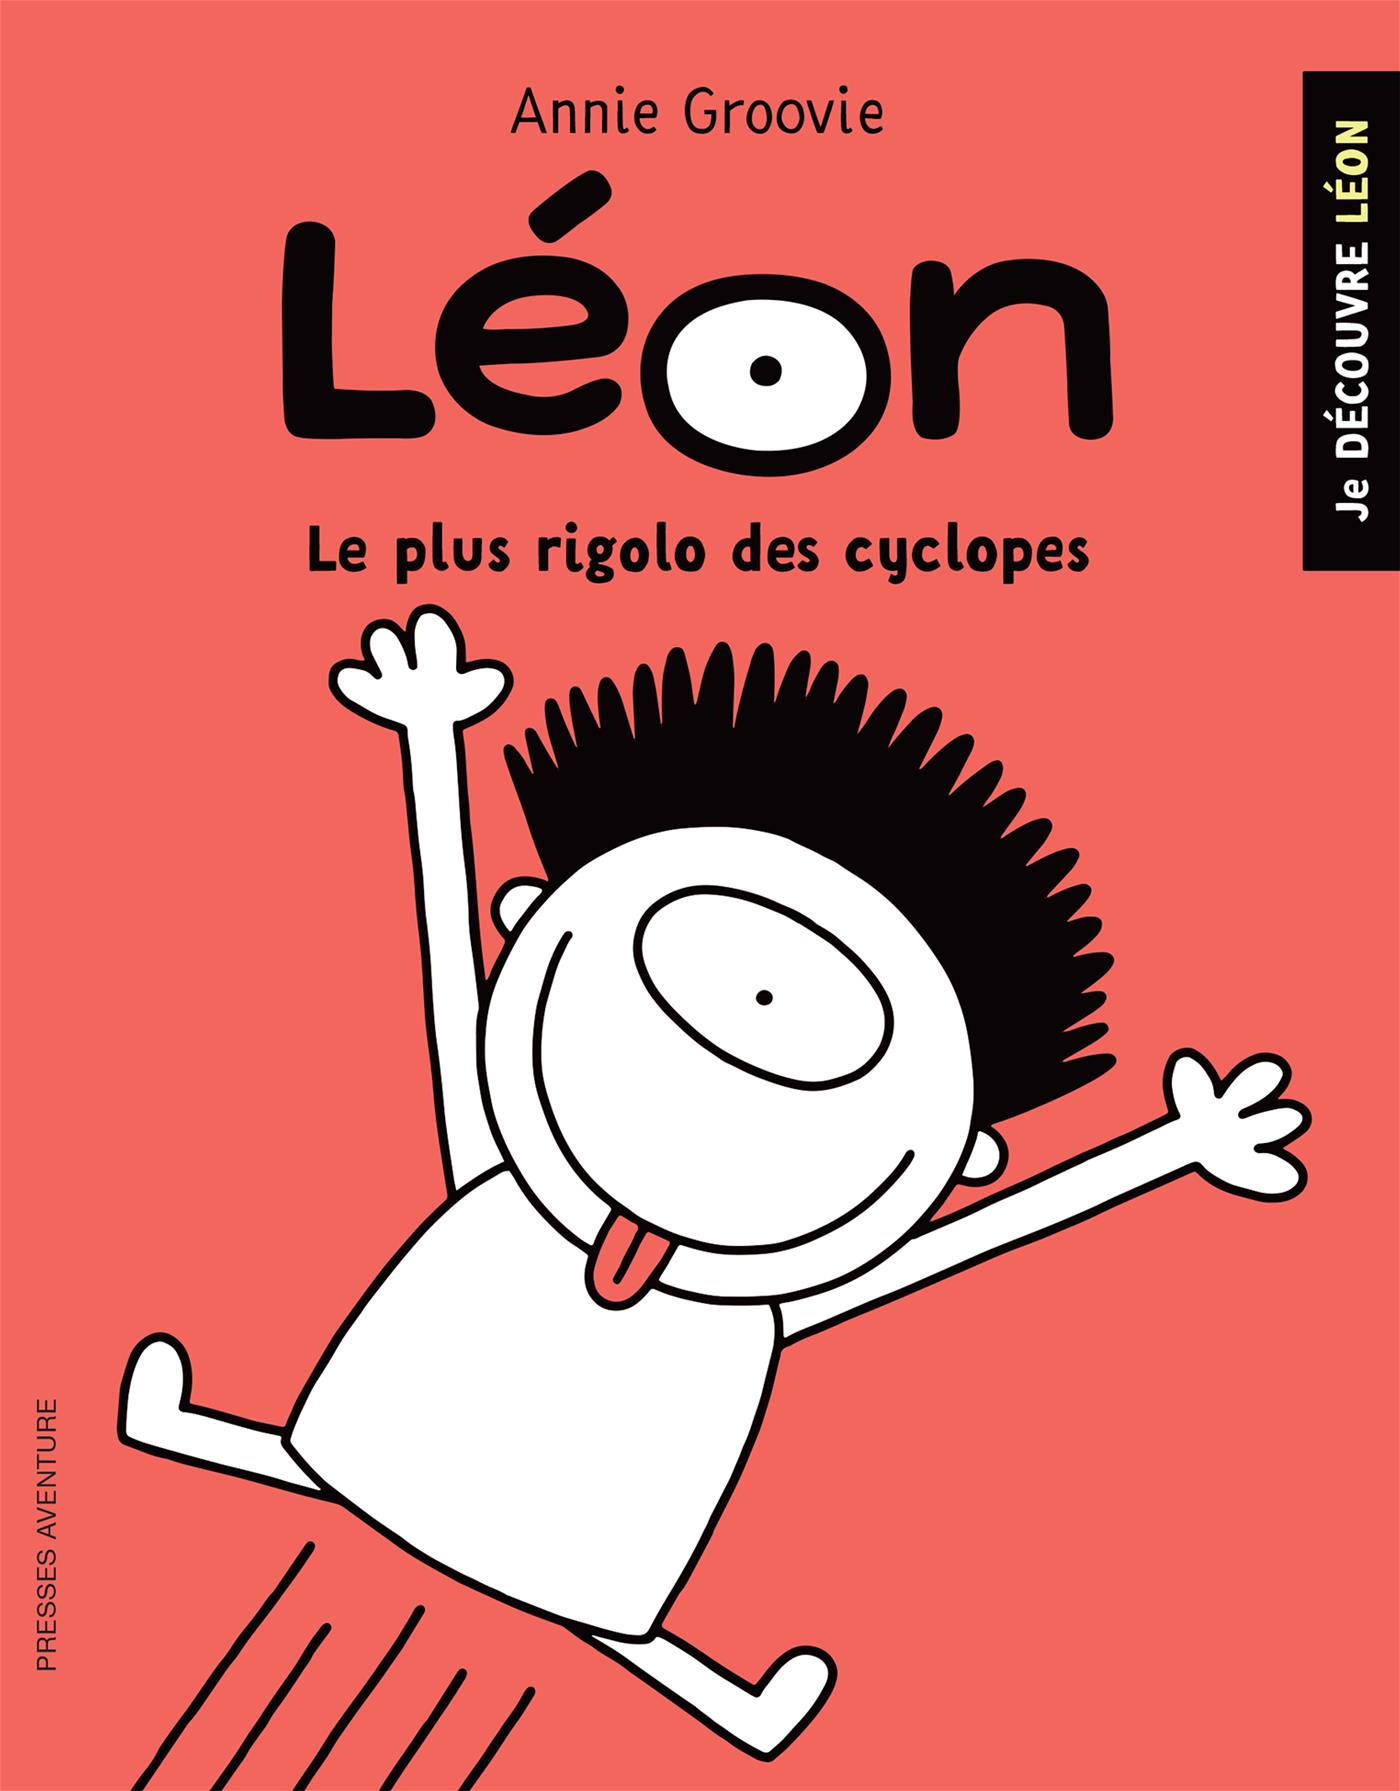 Léon - Le plus rigolo des cyclopes!